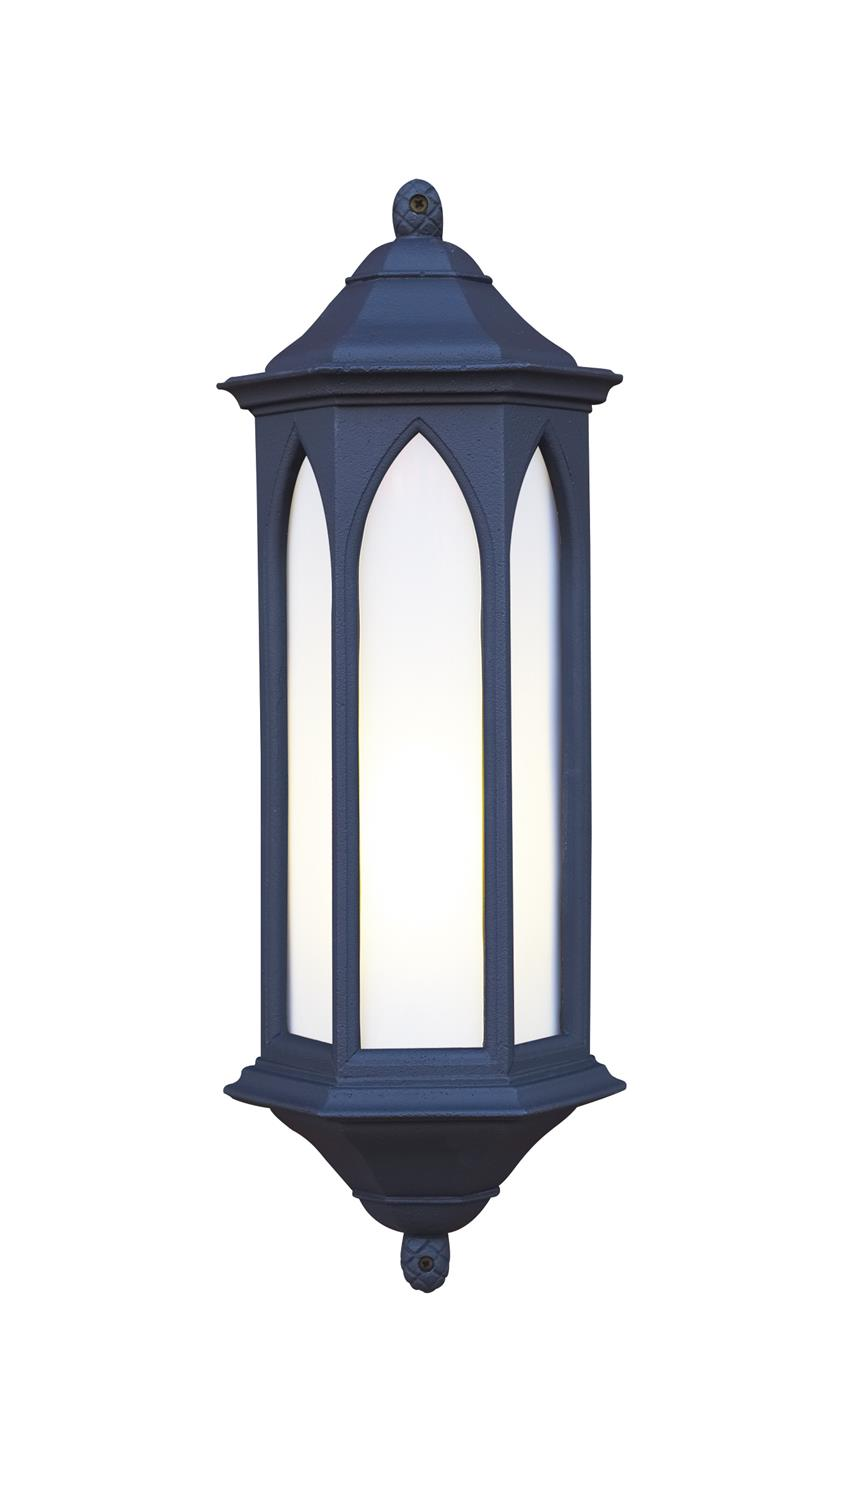 David Hunt Lighting WR22/LE Winchester Outdoor Half Lantern in Black Stone